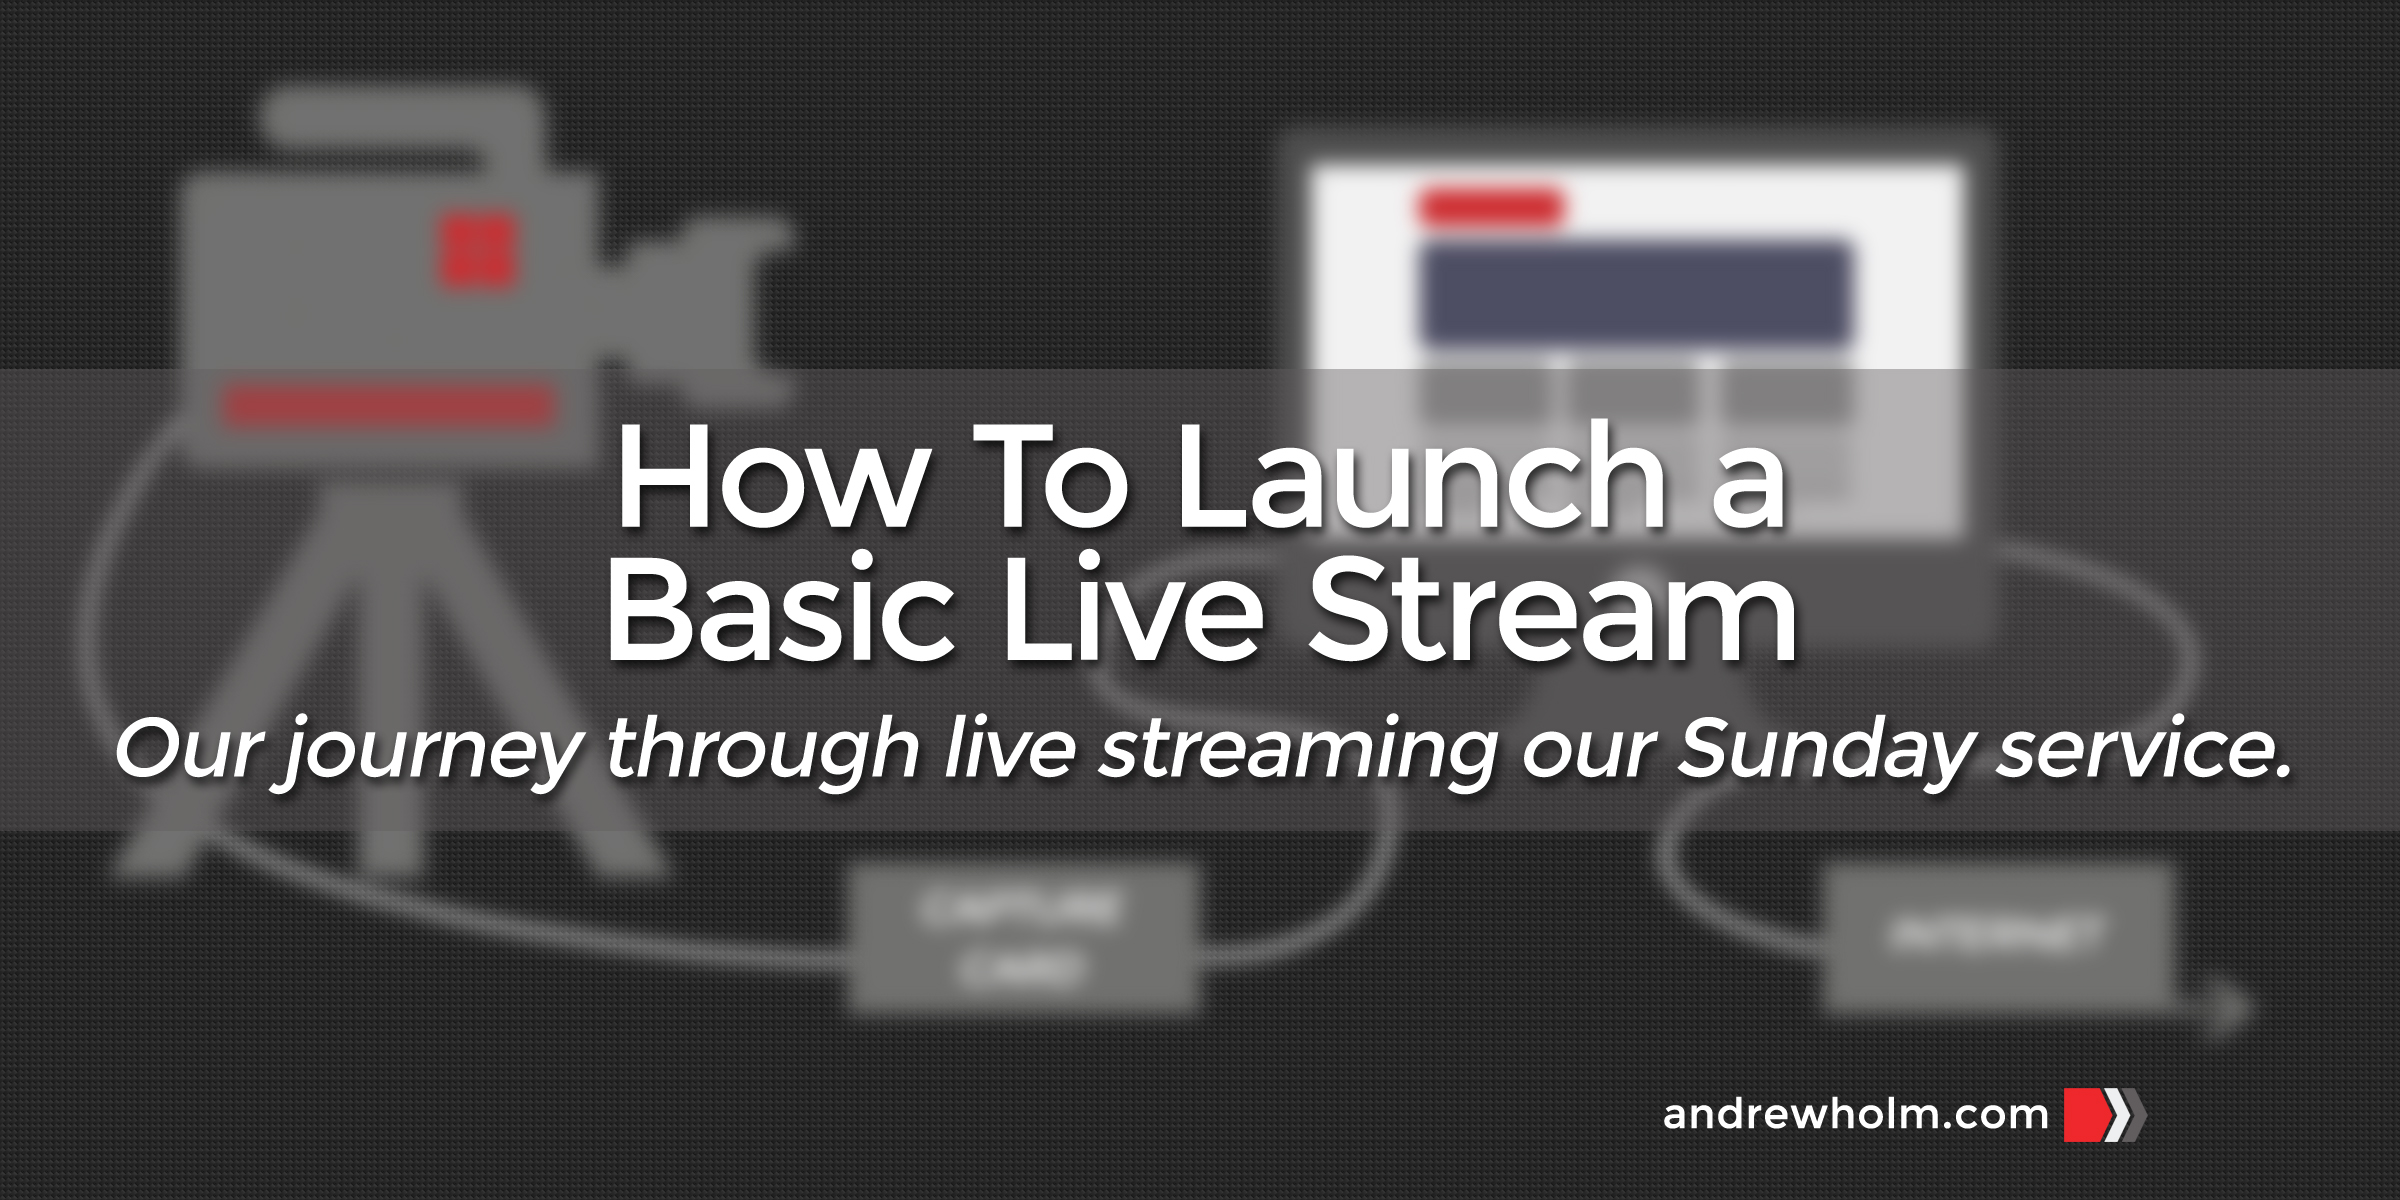 How To Launch a Basic Live Stream